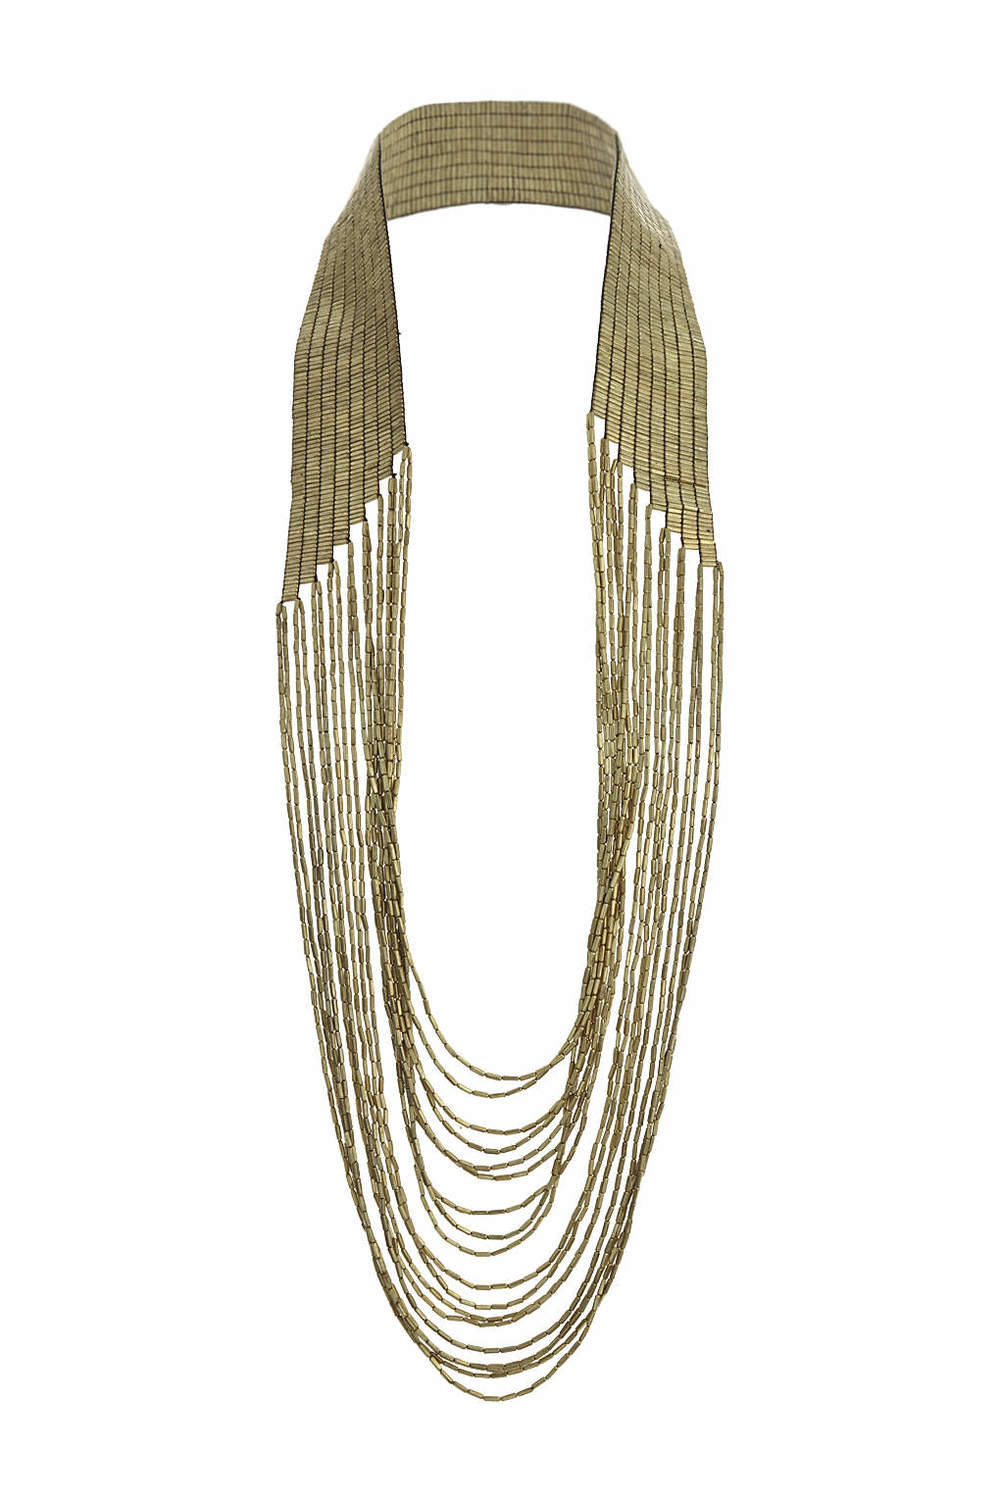 Beaded Multirow Drape Necklace. Topshop. $55.